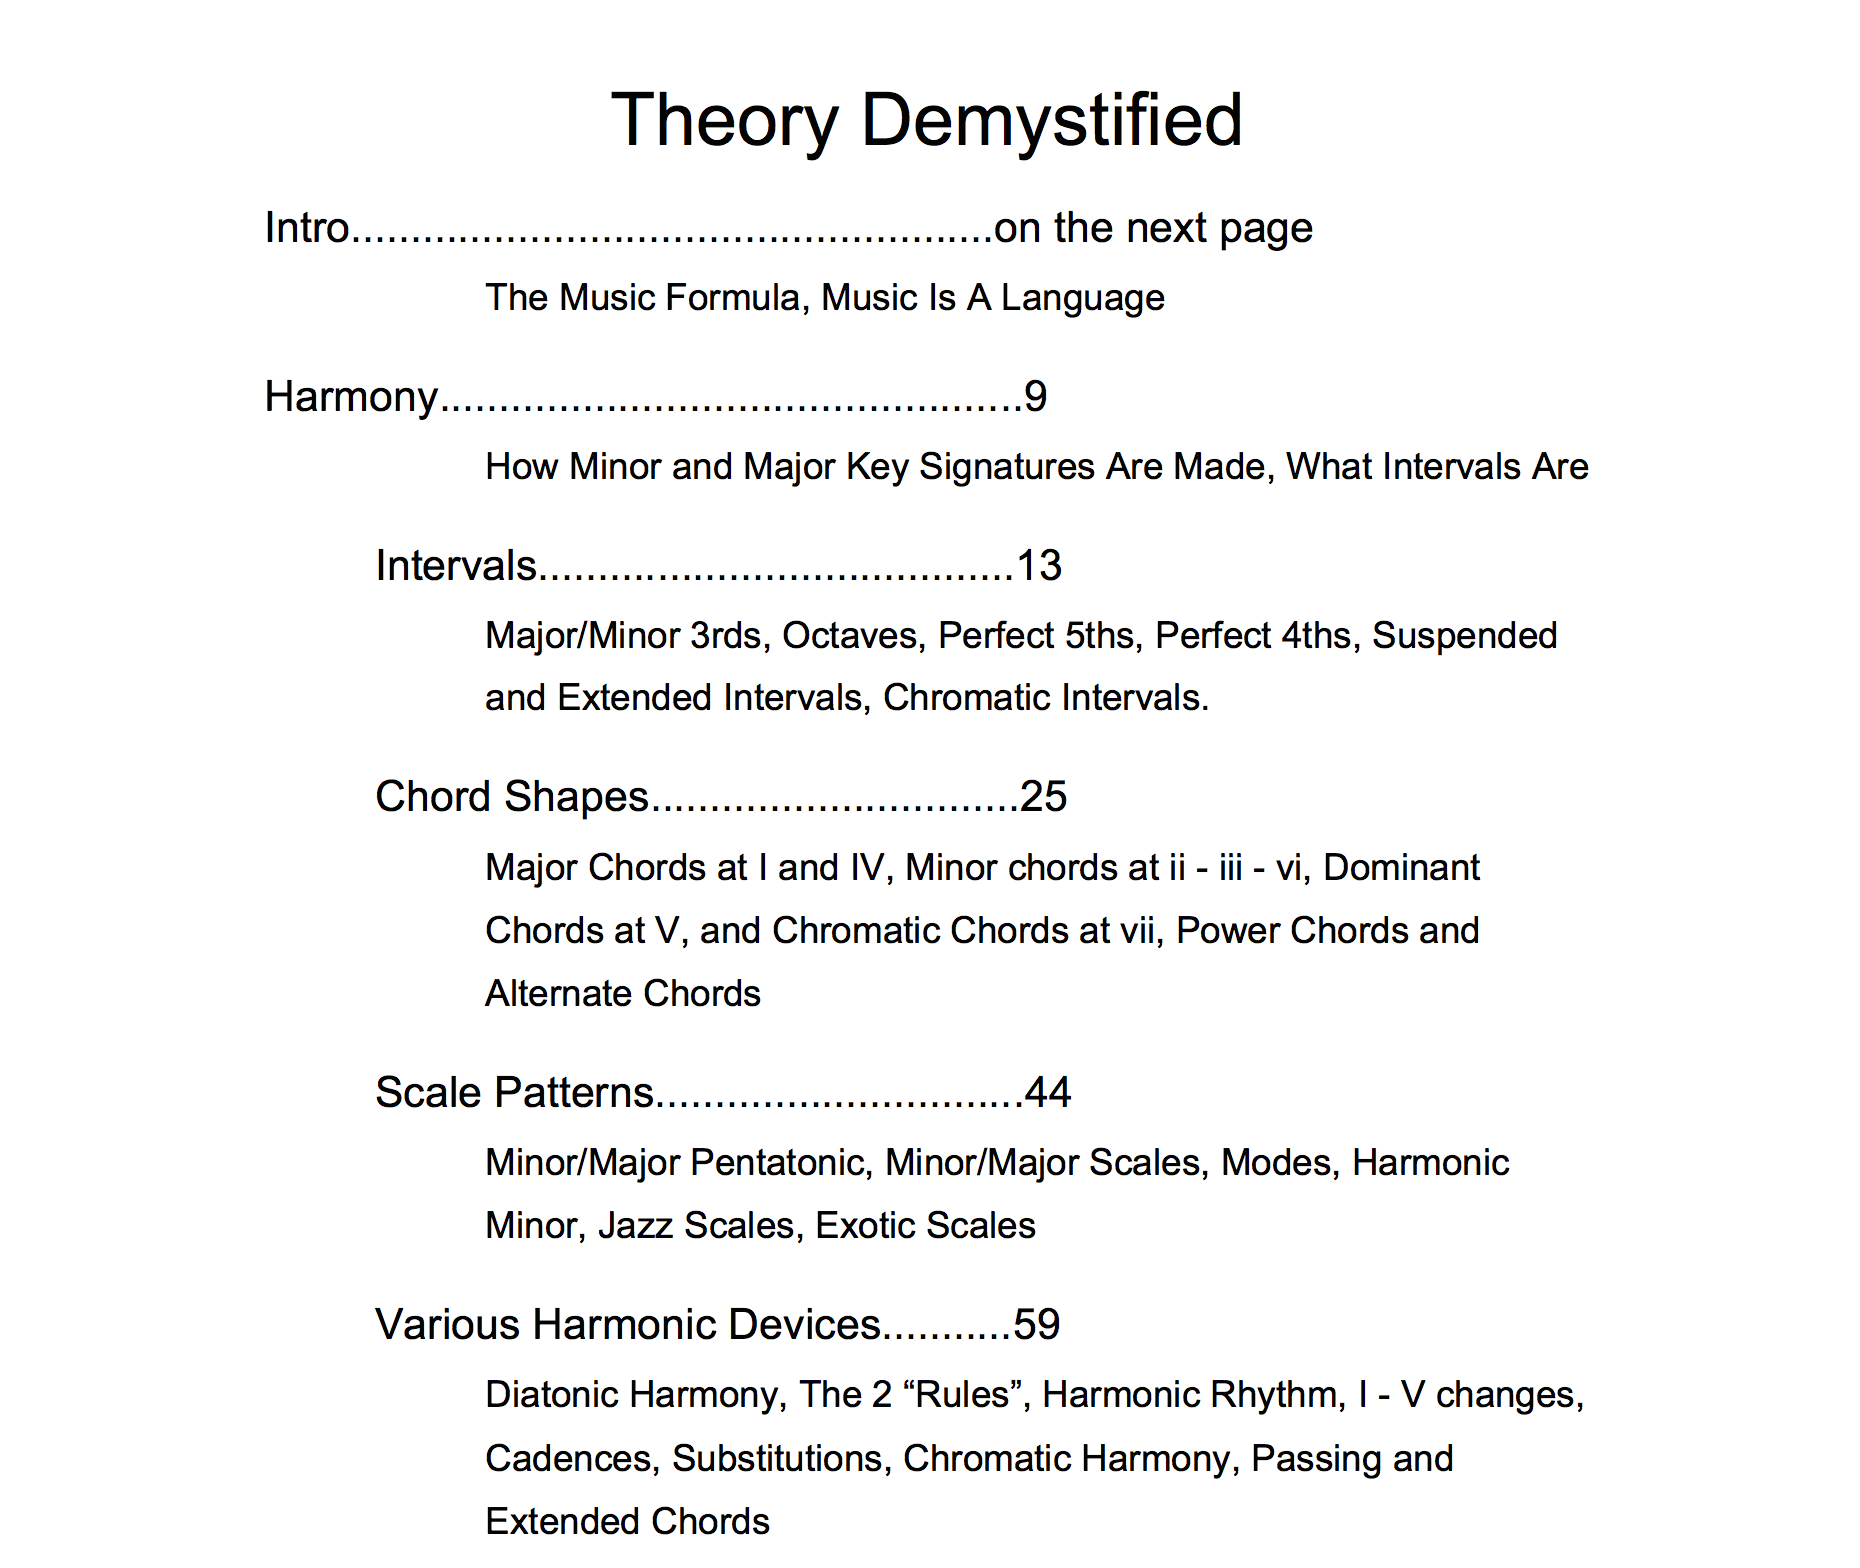 Theory demystified sales letter theory demystified contents page one shopify hexwebz Images